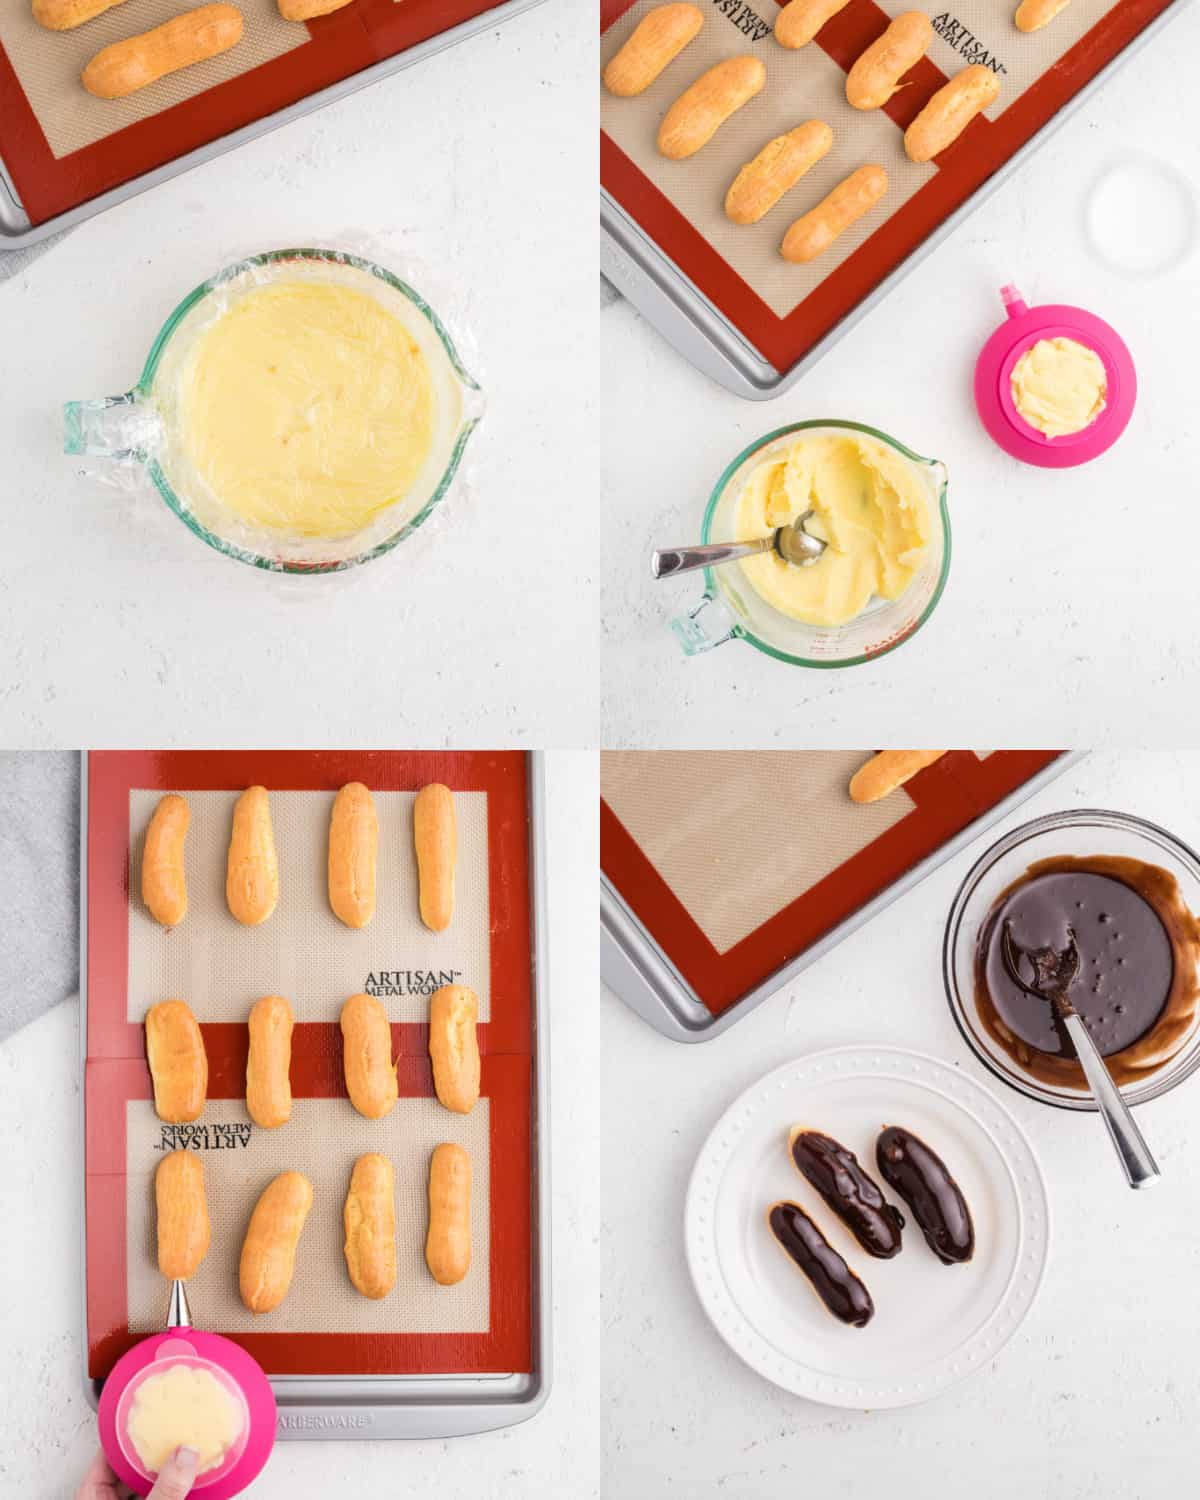 Four images showing the process of stuffing eclairs with filling and topping them with glaze.